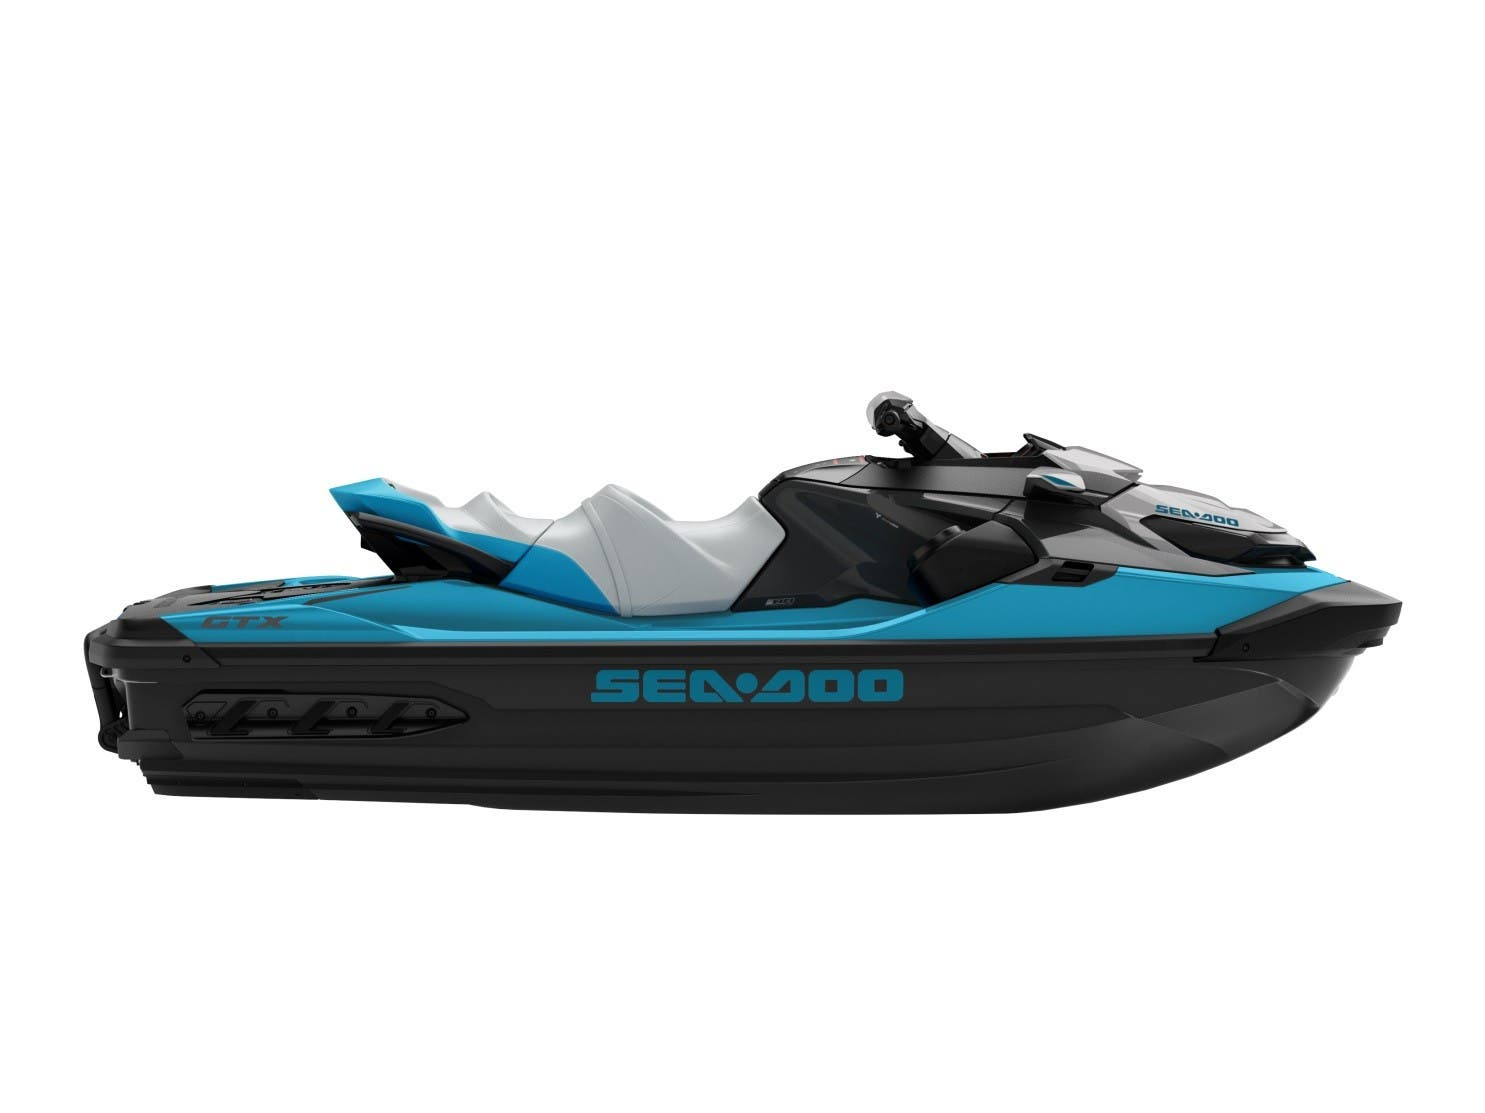 2021 Sea Doo PWC boat for sale, model of the boat is GTX 170 SS & Image # 3 of 4